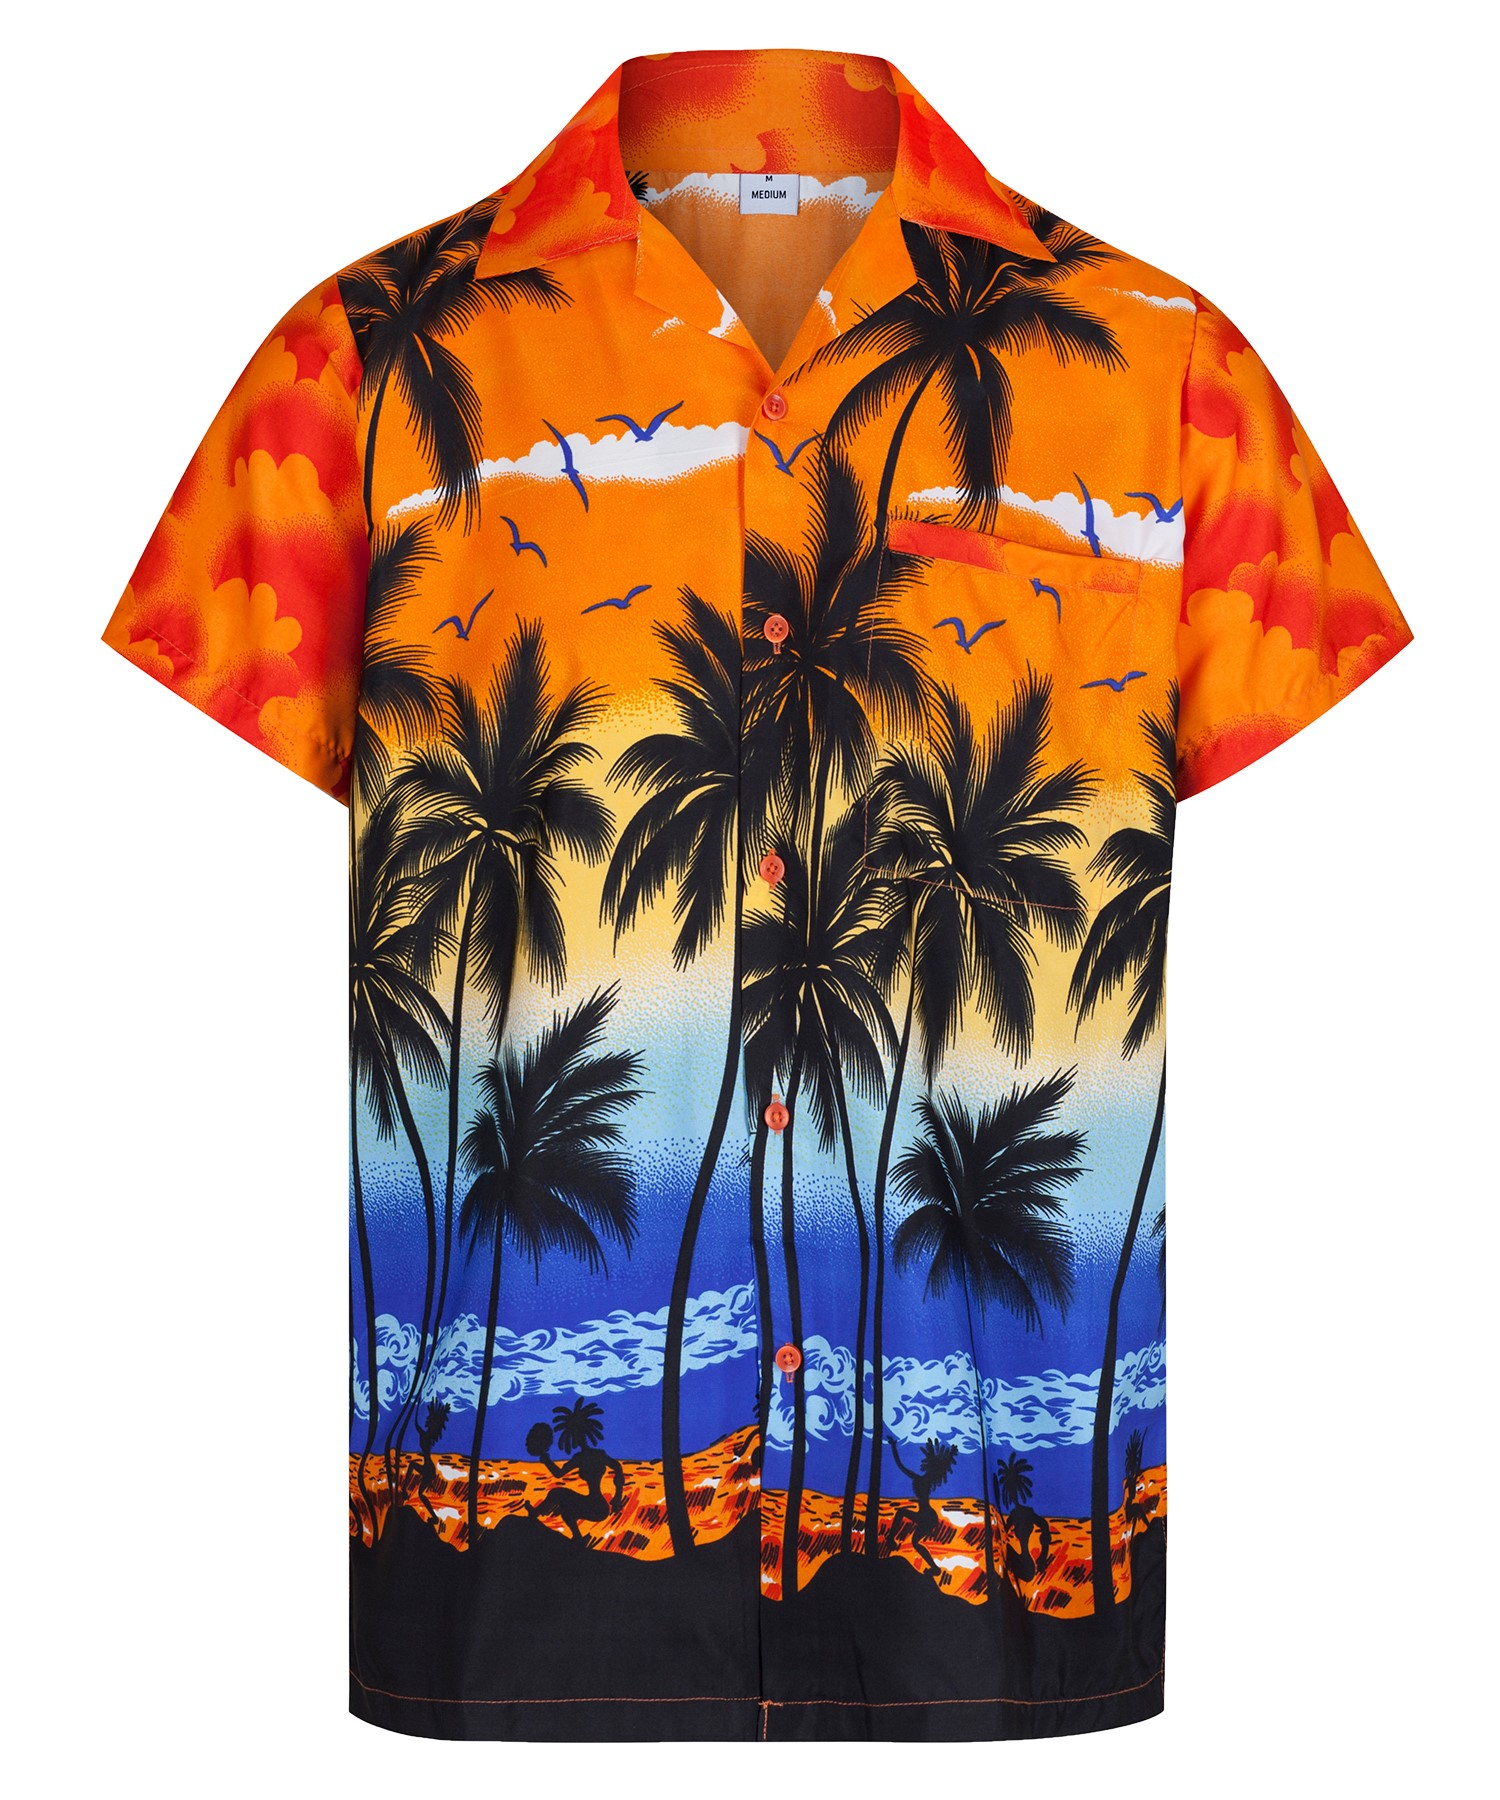 Mens Hawaiian Shirt Aloha Hawaii Themed Party Shirt